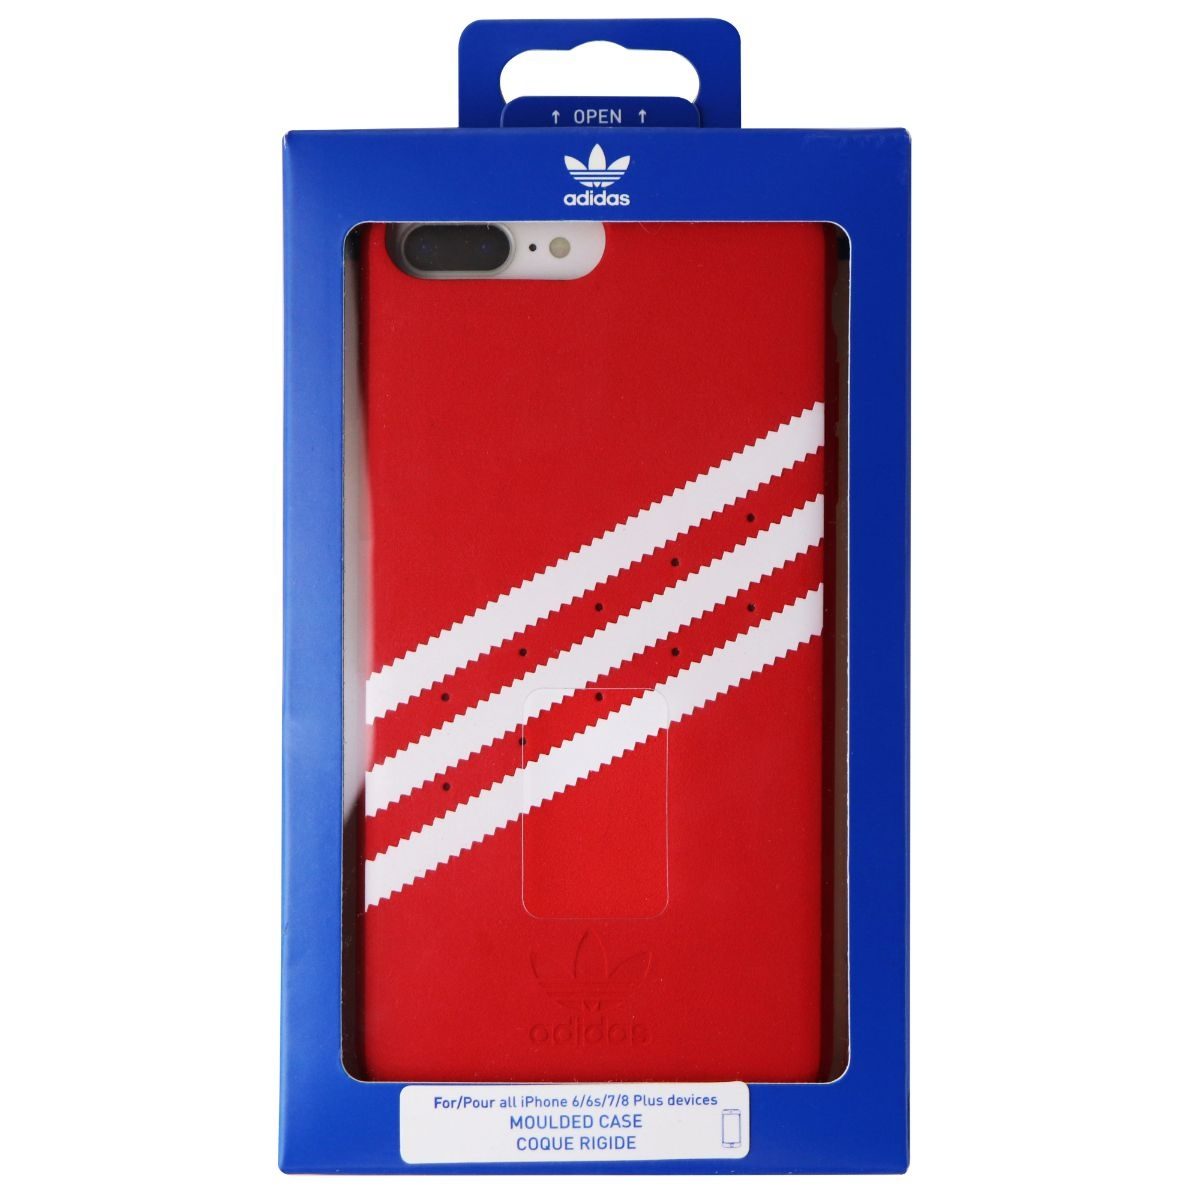 Adidas Moulded Suede Case for Apple iPhone 8 Plus/7 Plus - Red/White Stripes